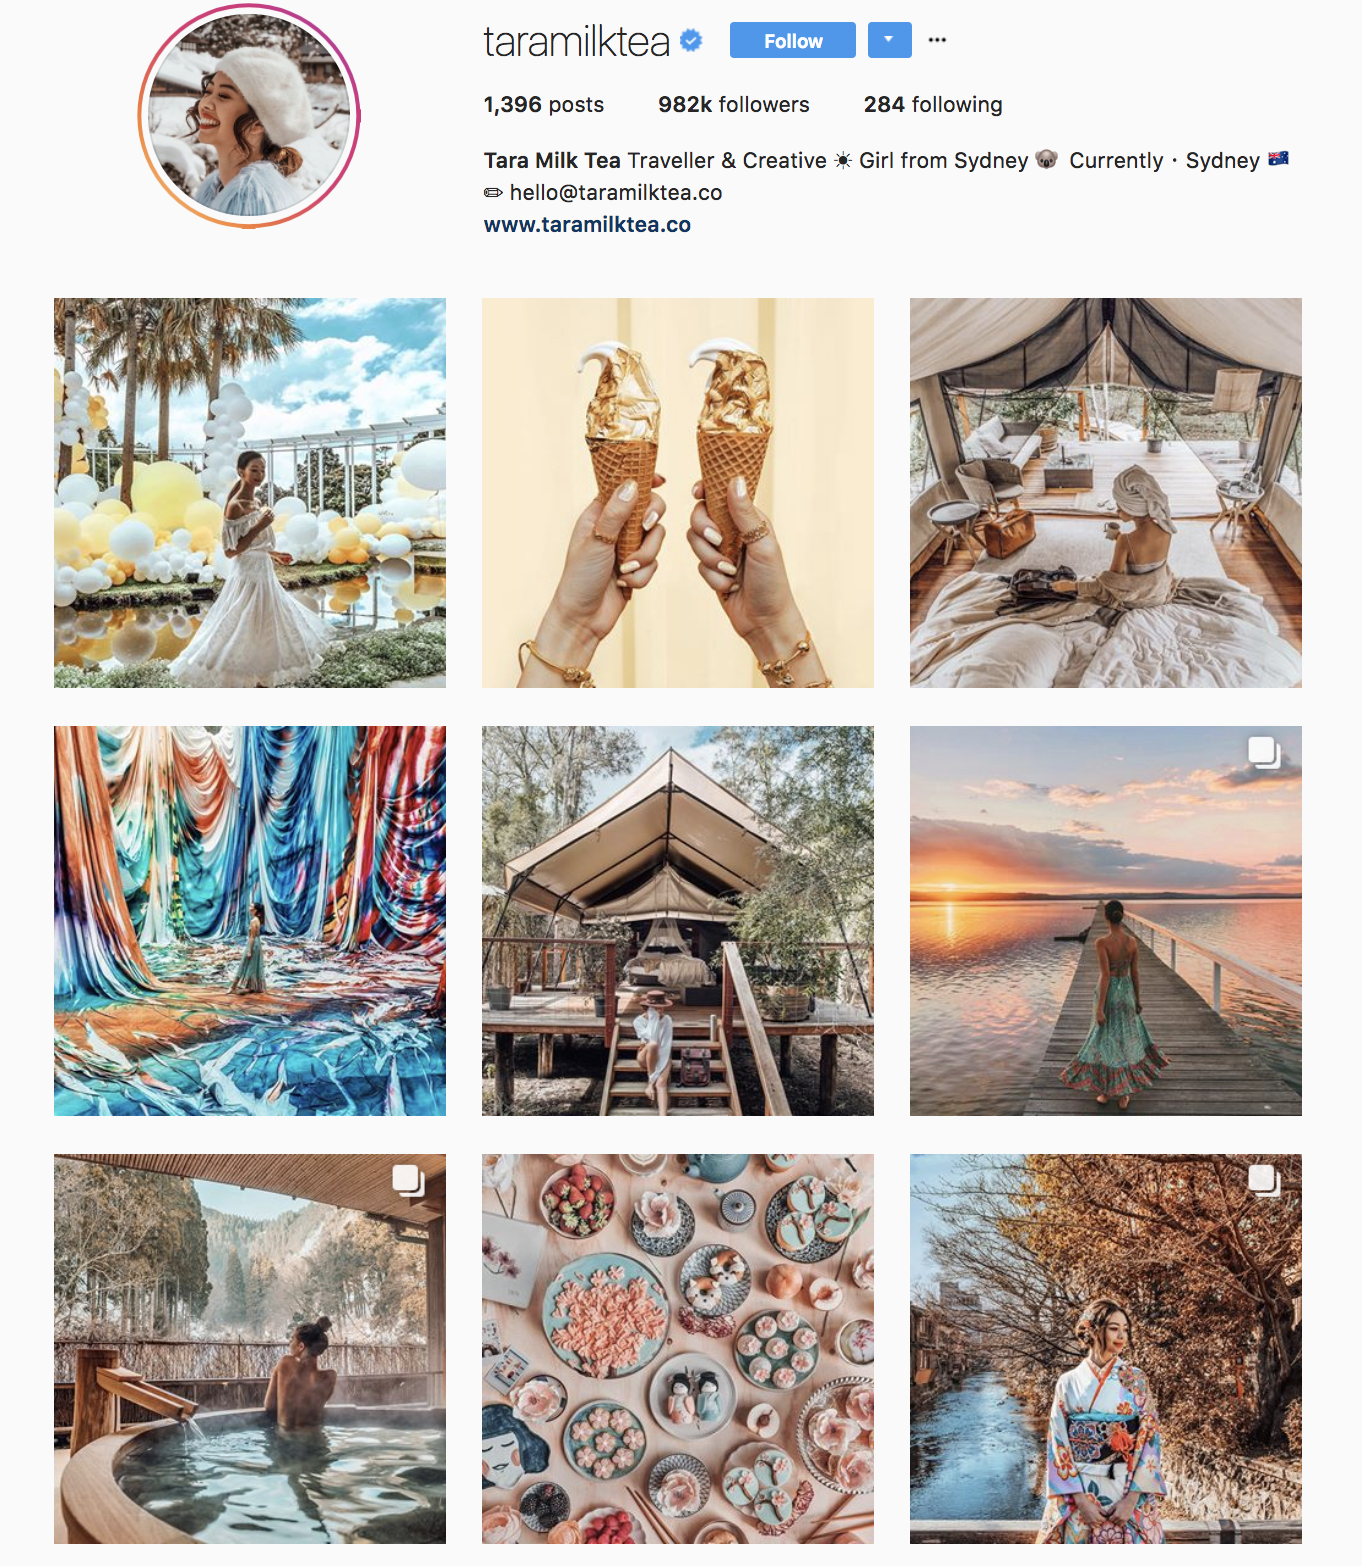 How To Become An Instagram Influencer - Sked Social